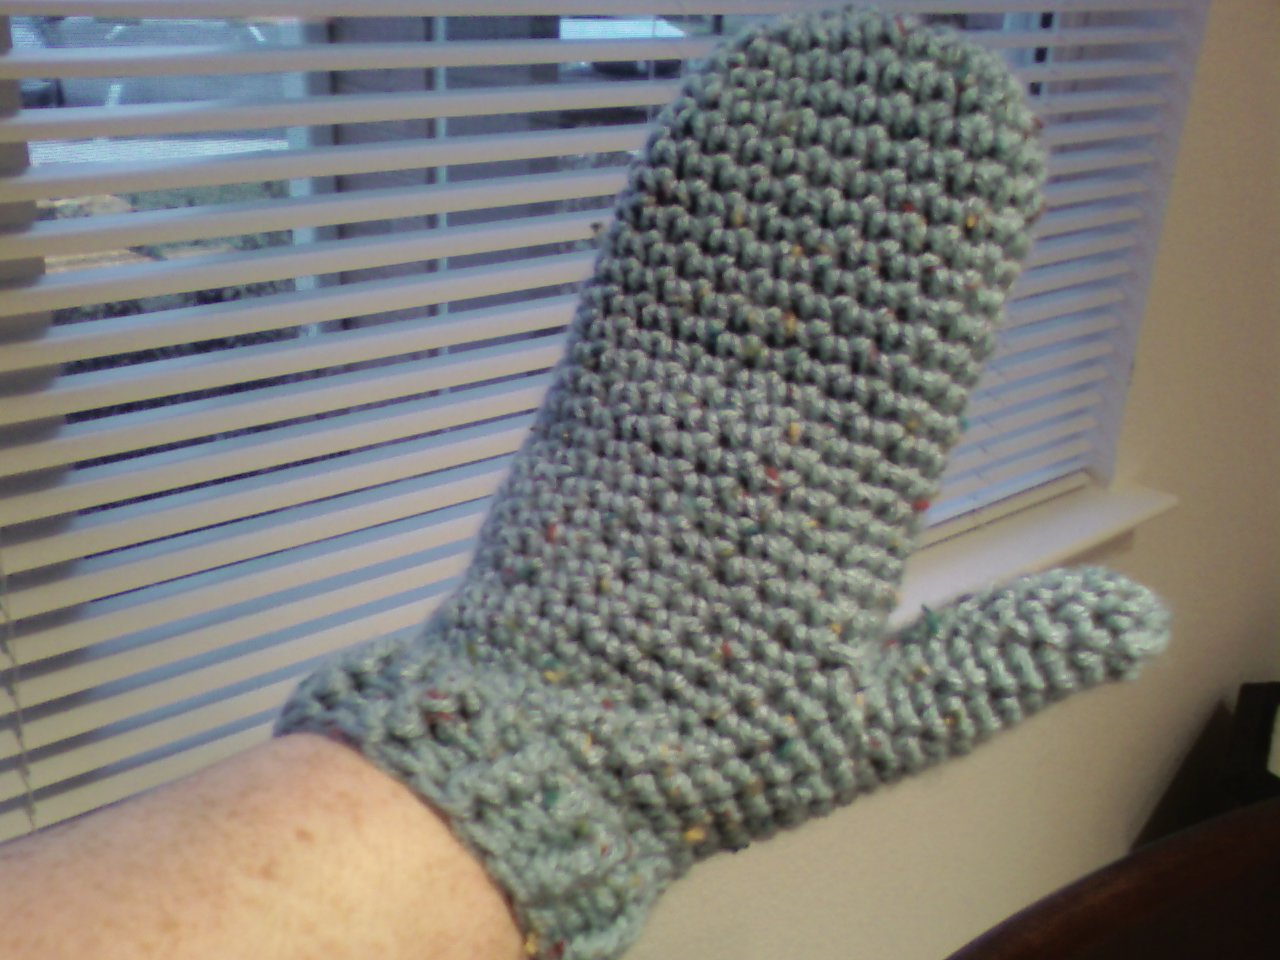 Crochet Mitten Patterns For Beginners : Hodge Podge Mittens Pattern GretchKals Yarny Adventures